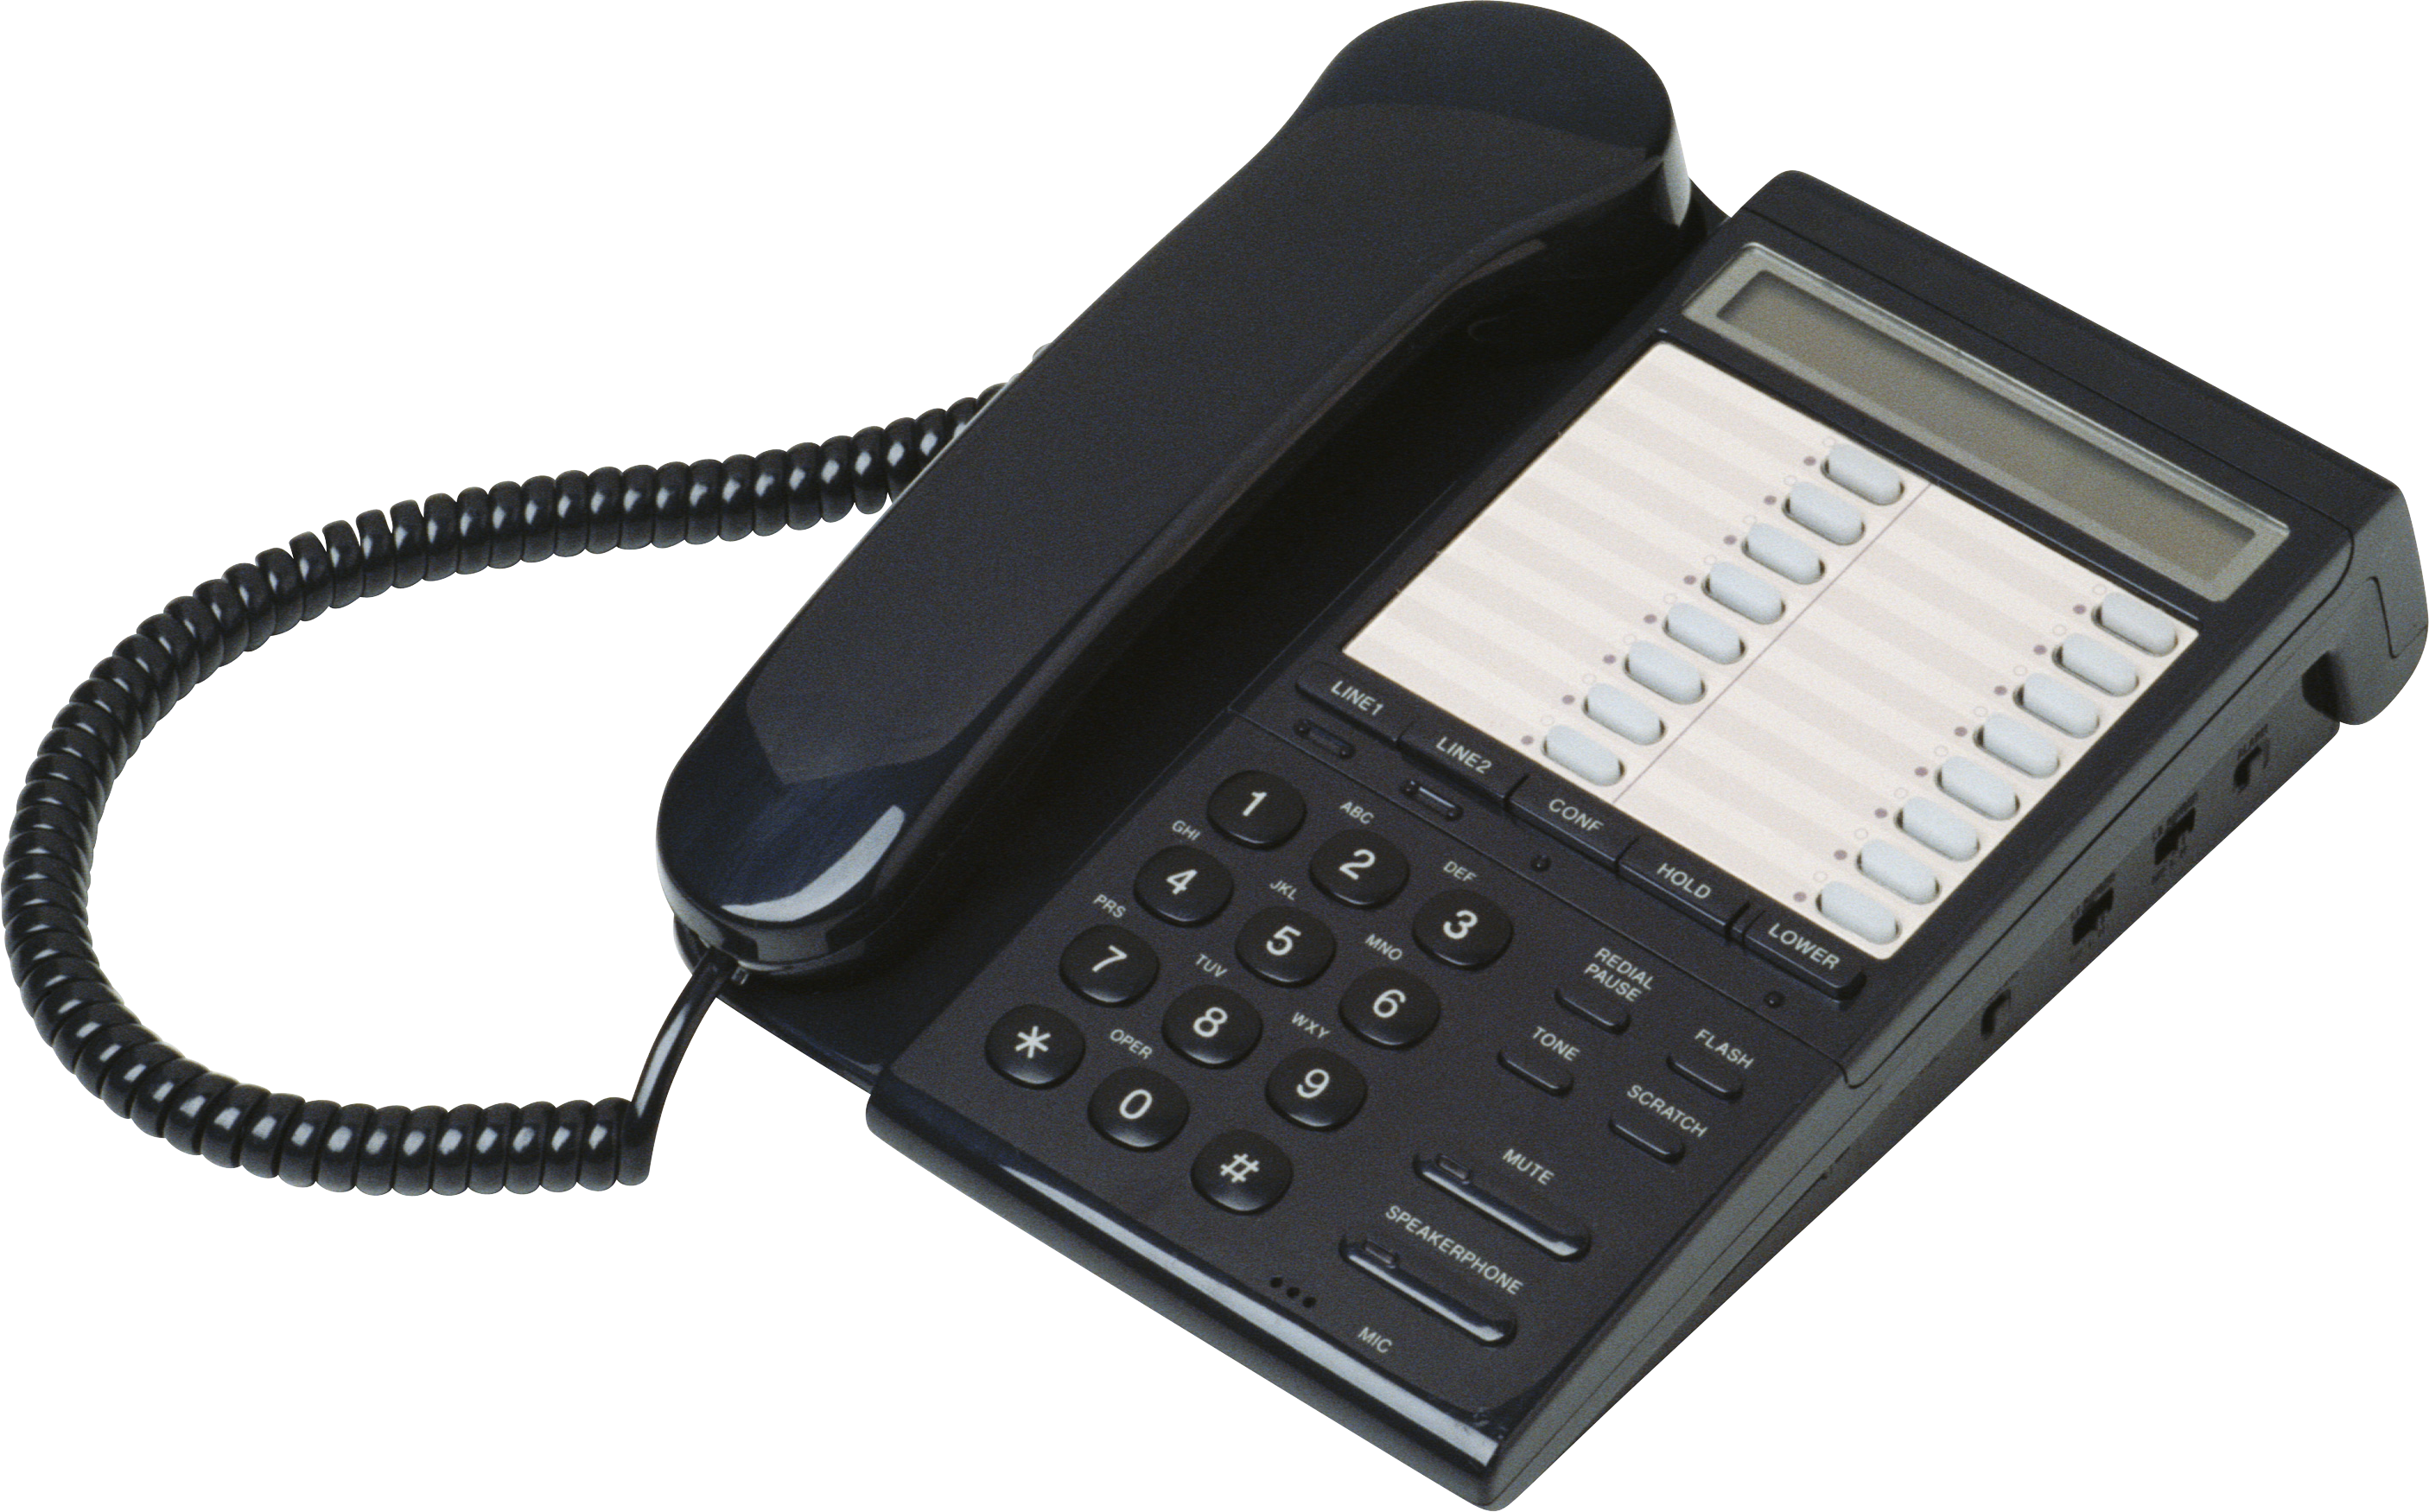 Png images free picture. Clipart phone landline phone